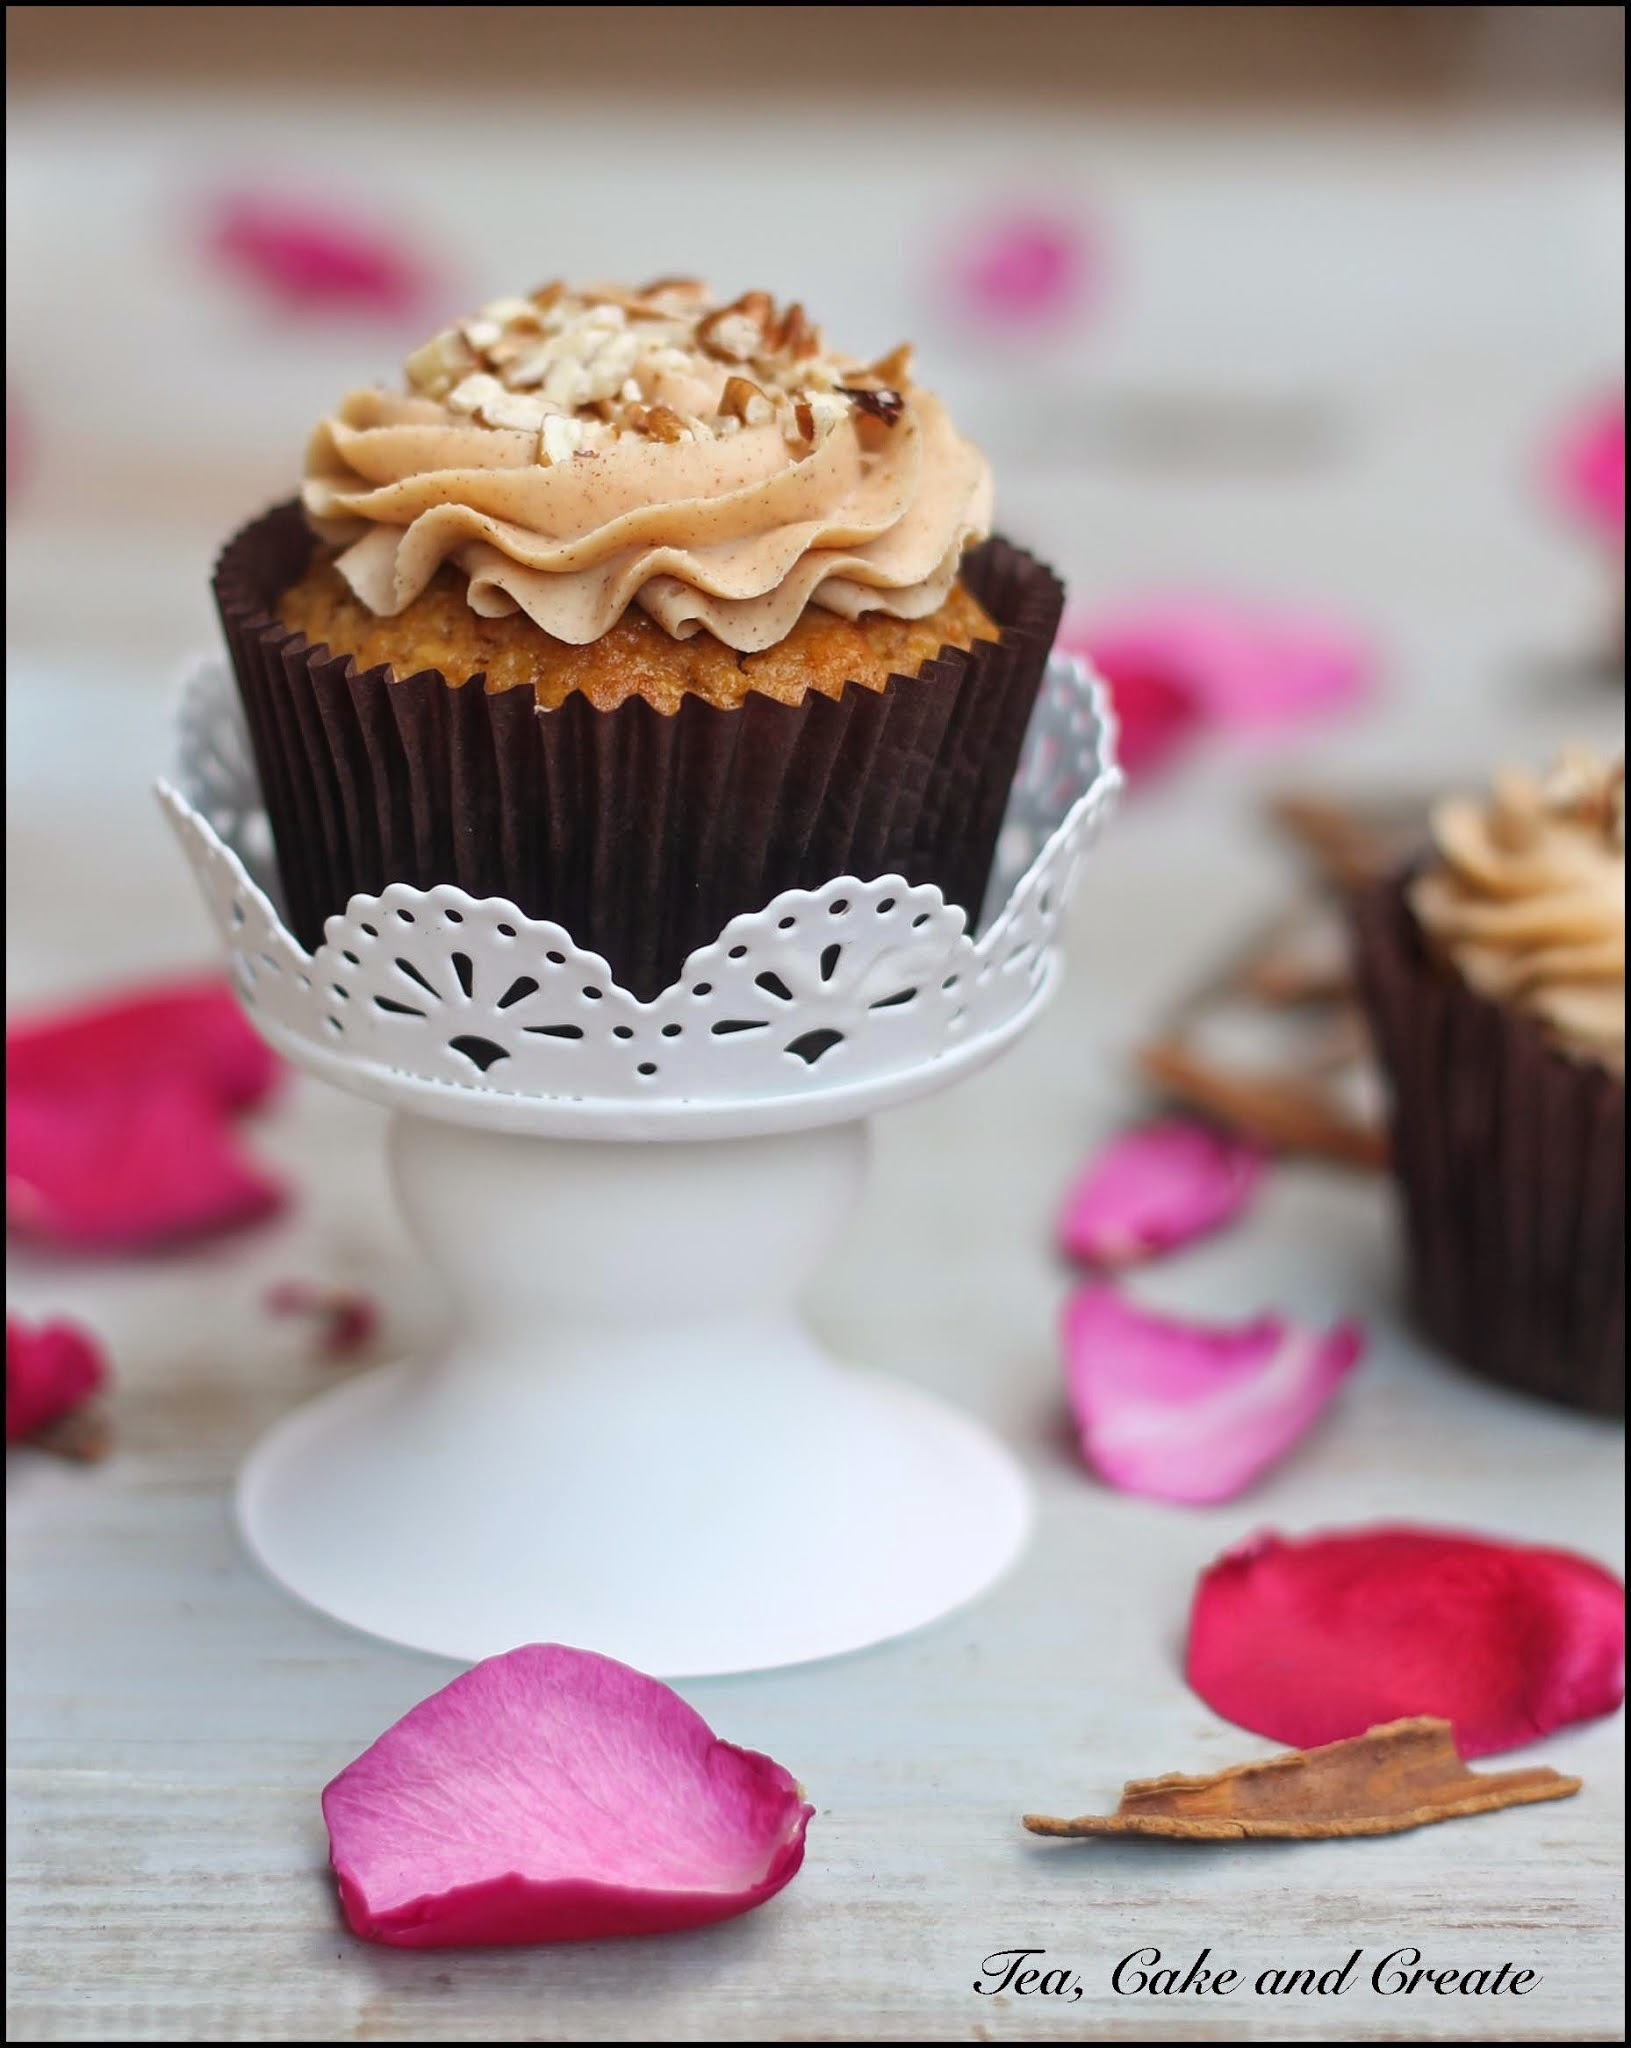 Carrot Cake Cupcakes with Cinnamon and Salted Caramel Cream Cheese Icing